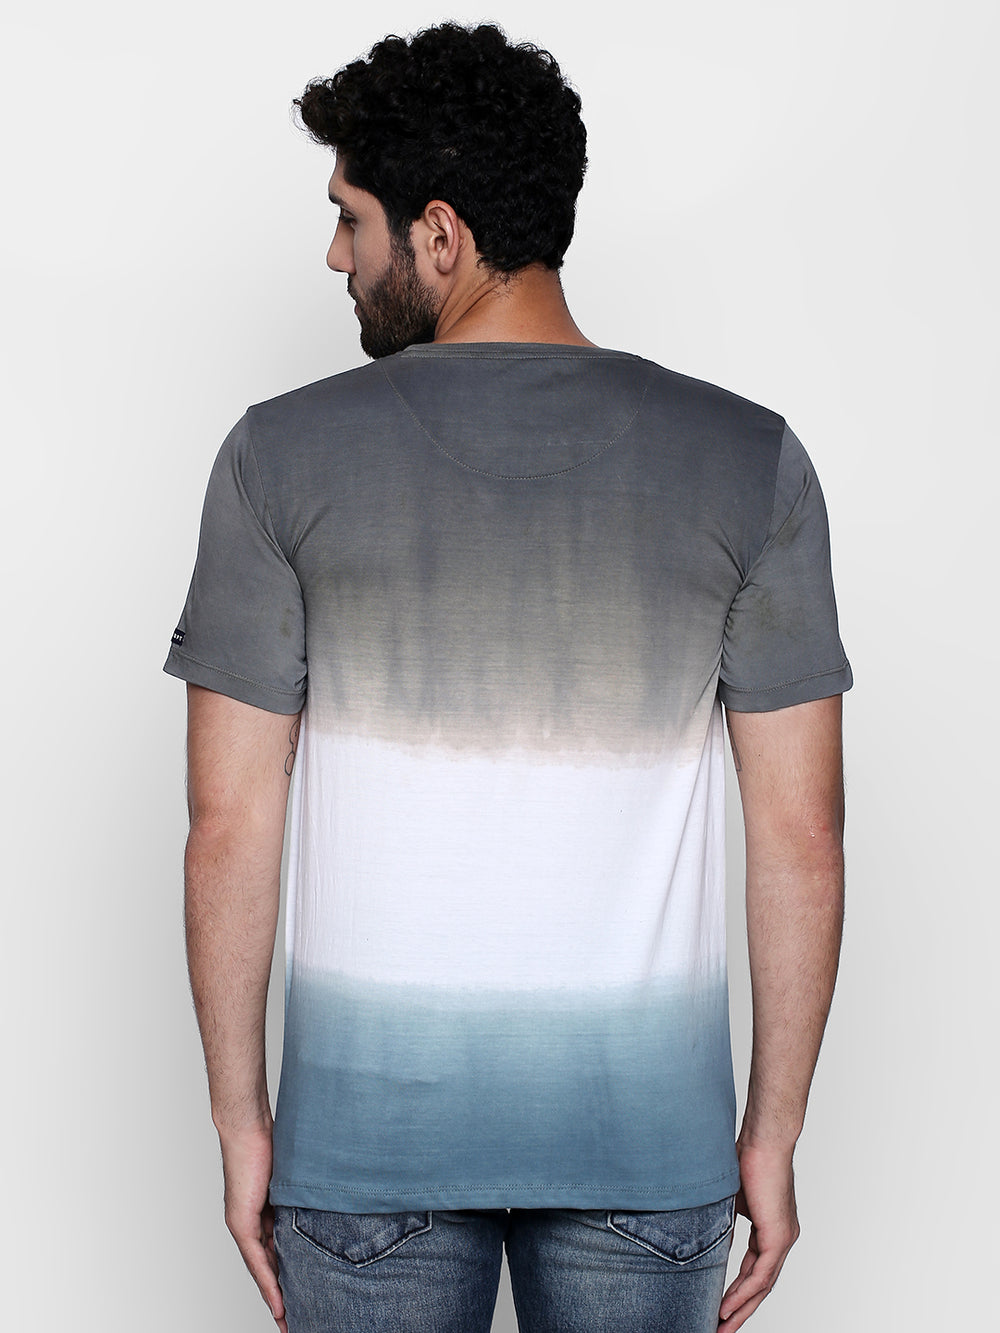 Dark Blue N White Striped Grey Cotton T-Shirt